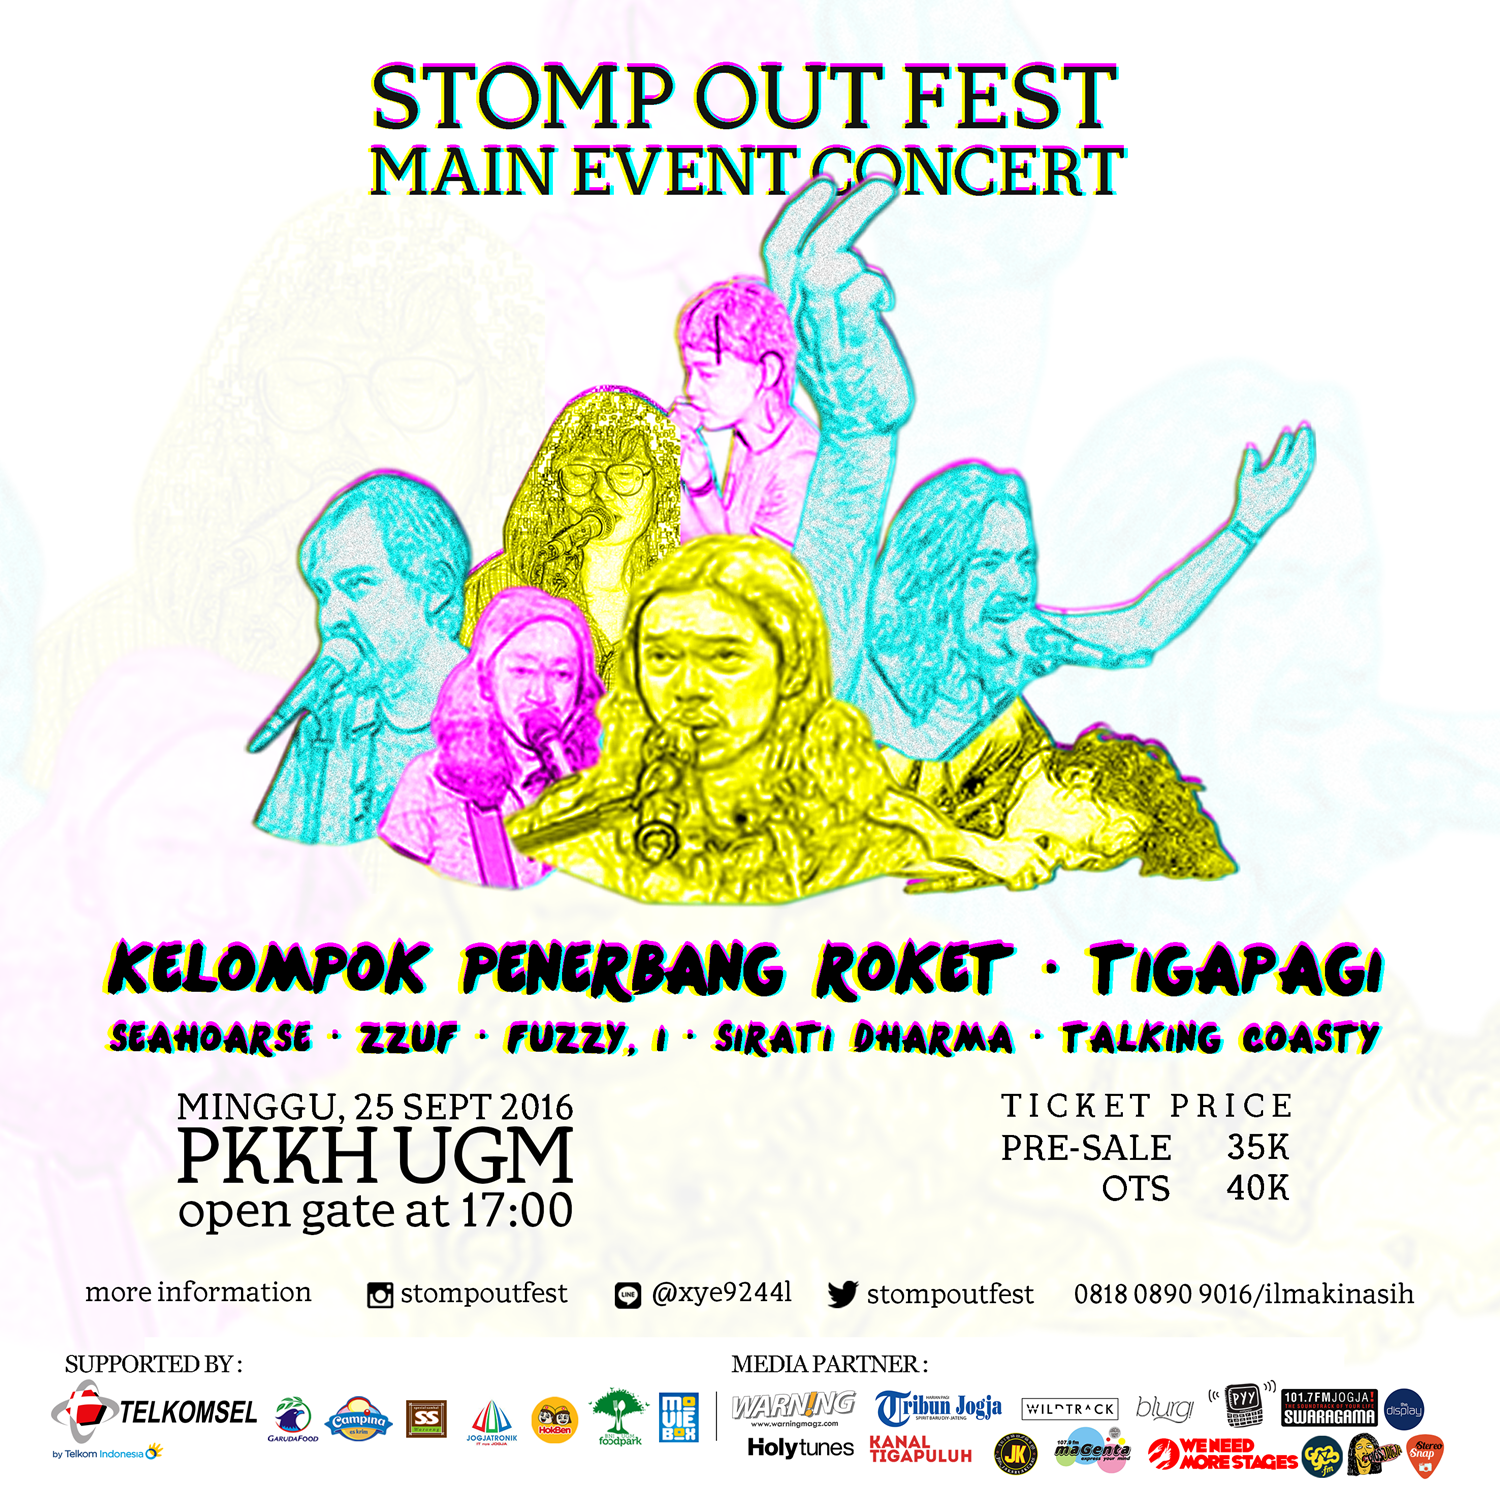 stomp-out-fest-main-event-concert